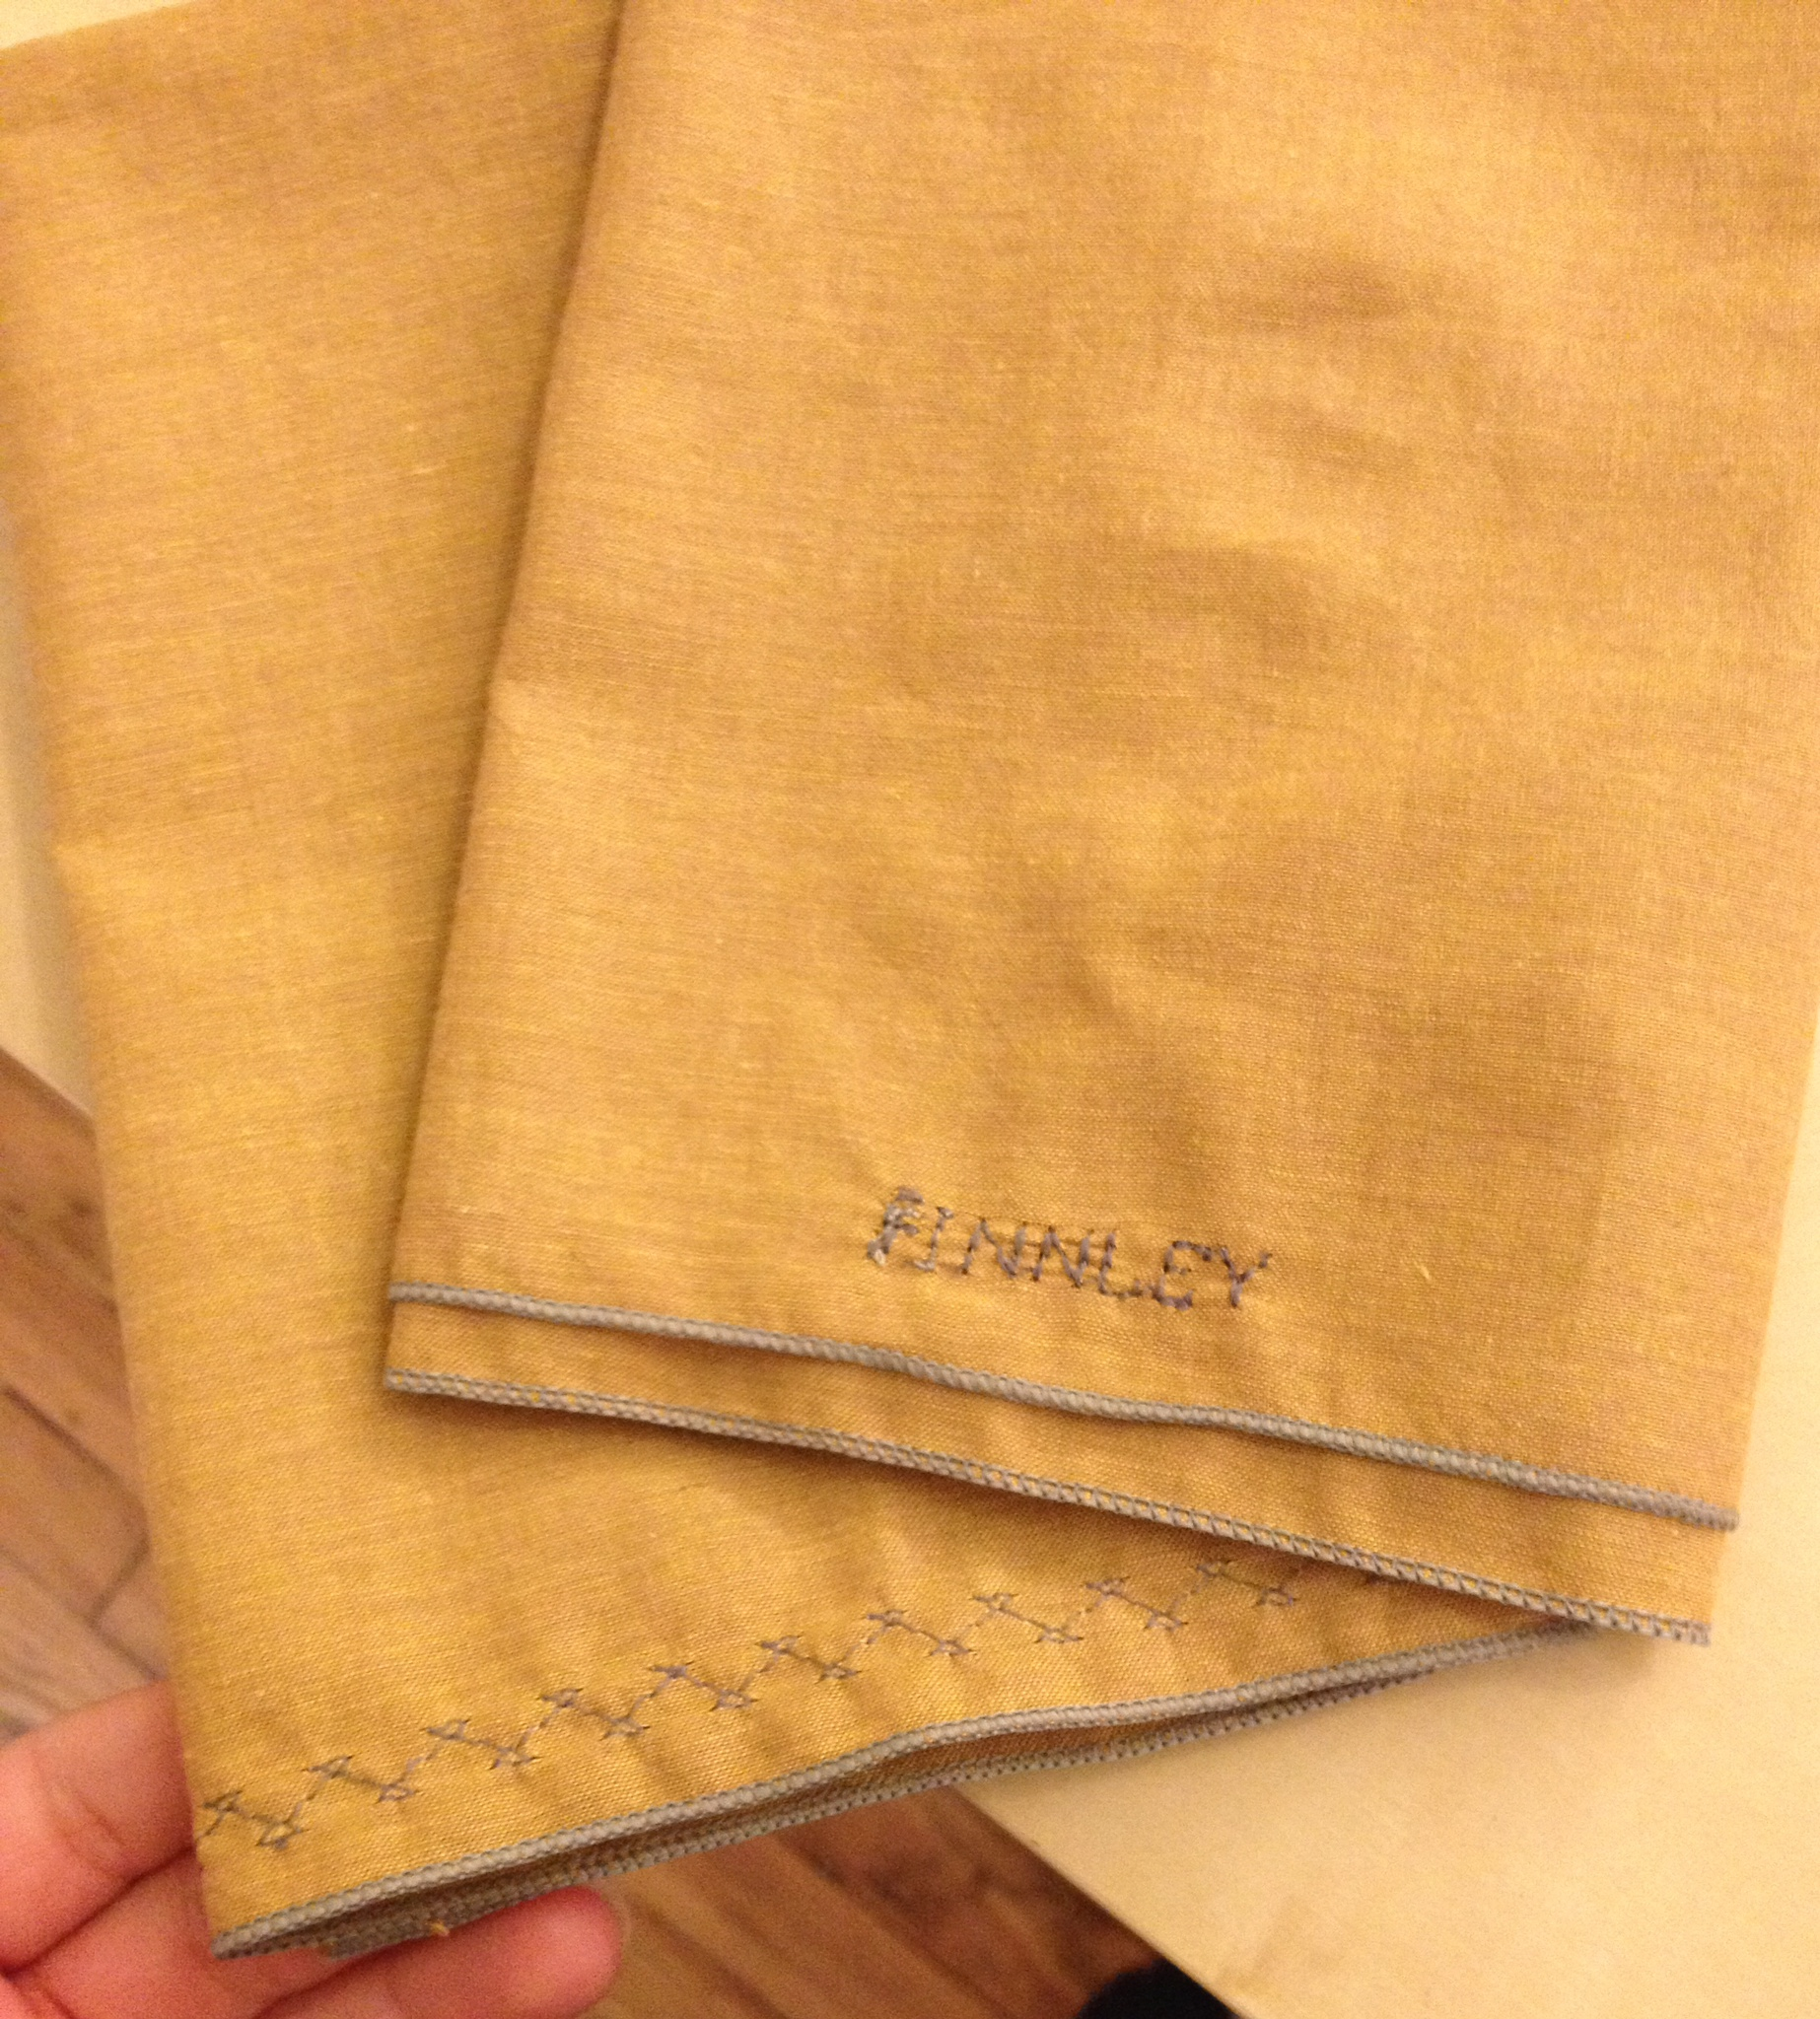 Personalized Holiday Napkins- Learn to use a serger, if you want. Make your holiday dinner extra special.